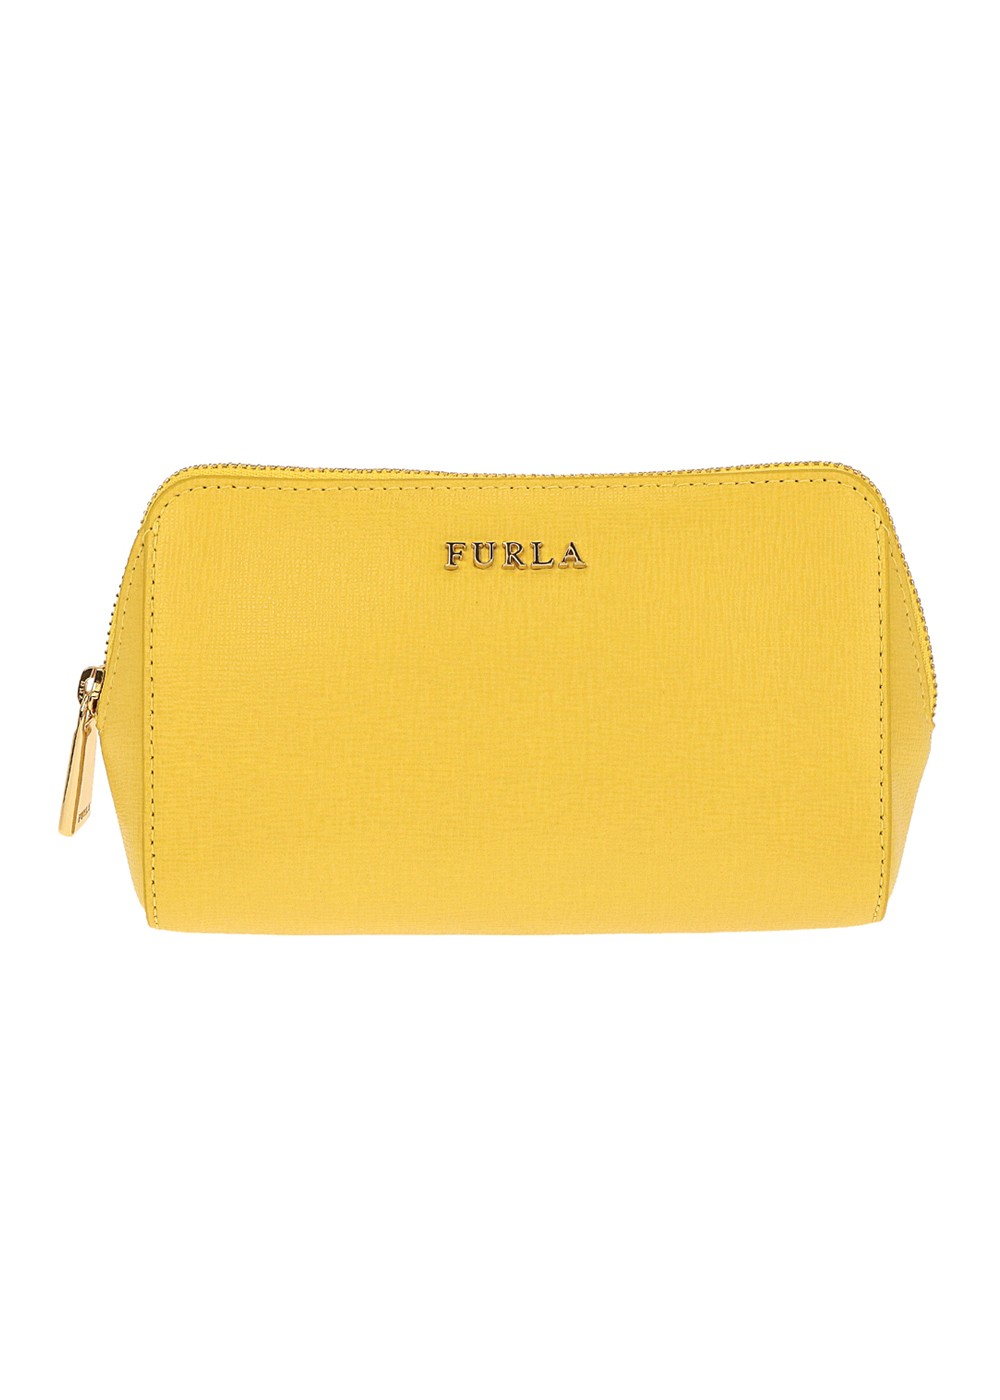 【最大58%OFF】ポーチ|SOLE|ポーチ|FURLA - wallet and more